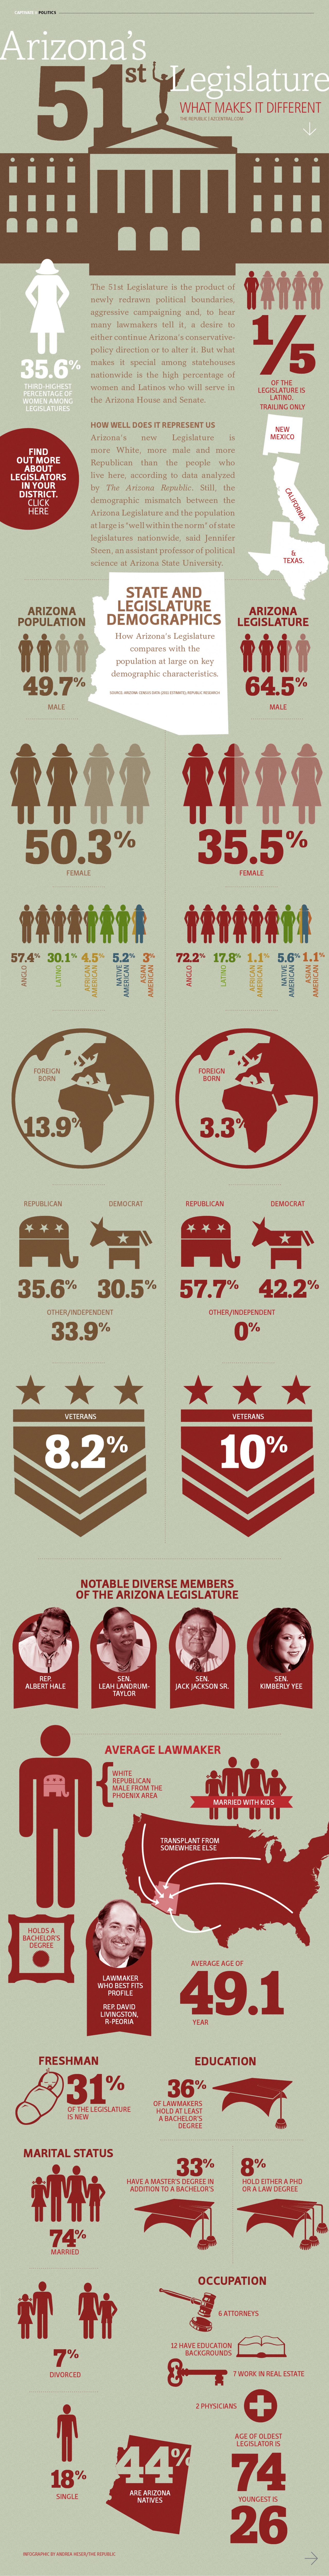 Arizona's Legislature: What makes it different Infographic